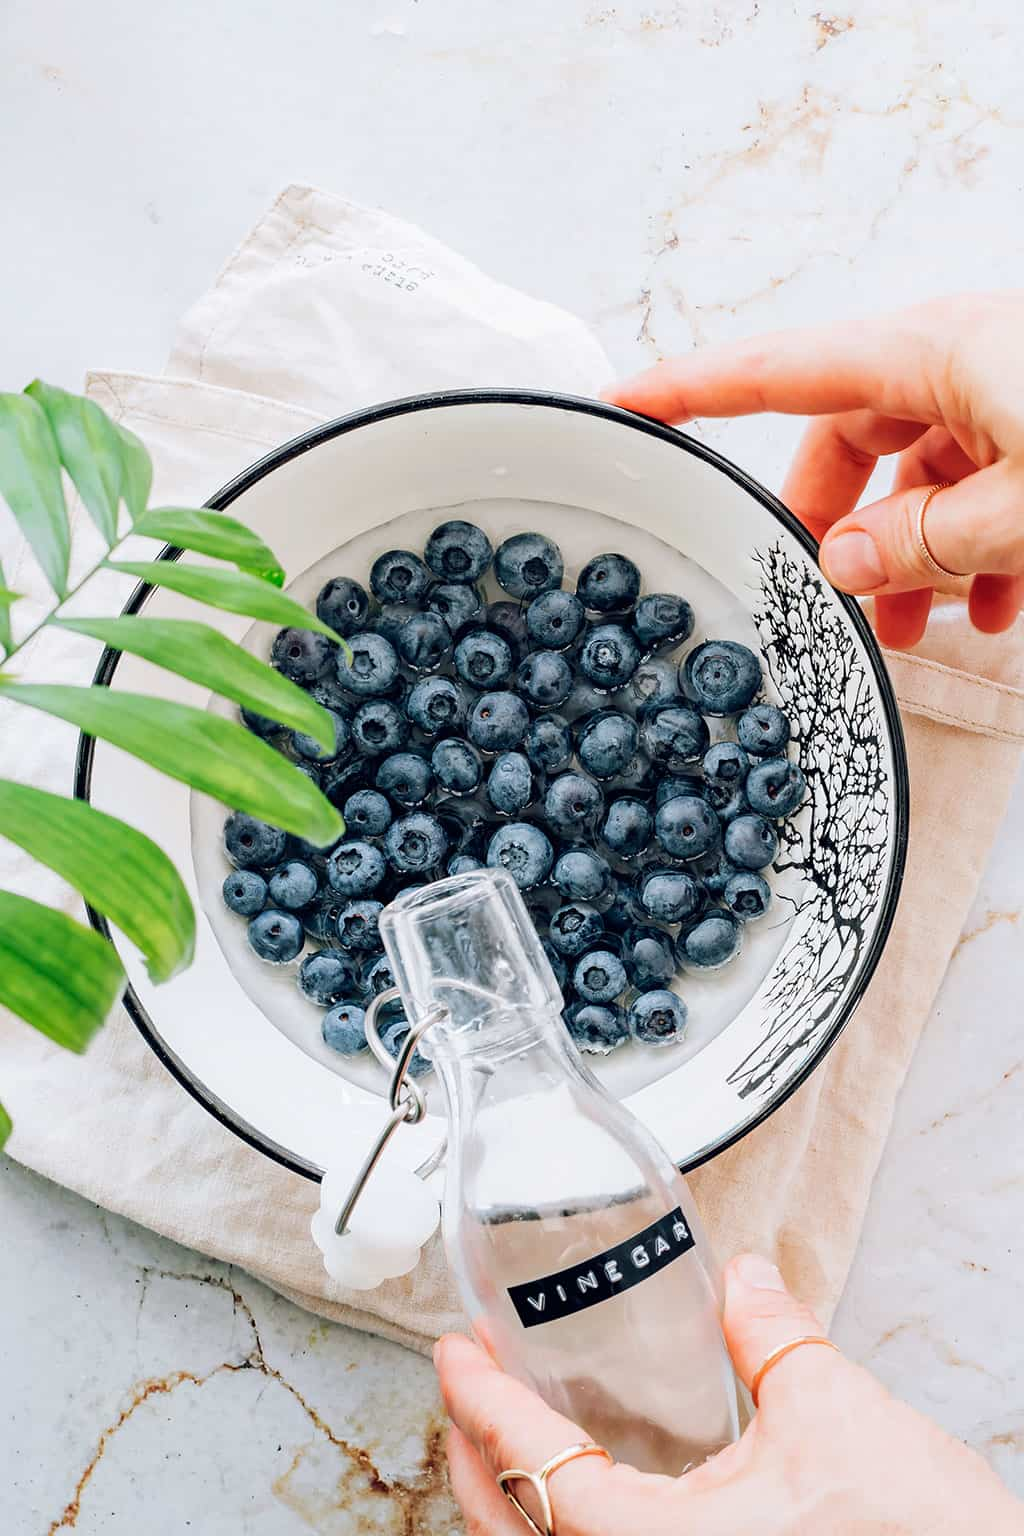 How to clean berries with a vinegar soak